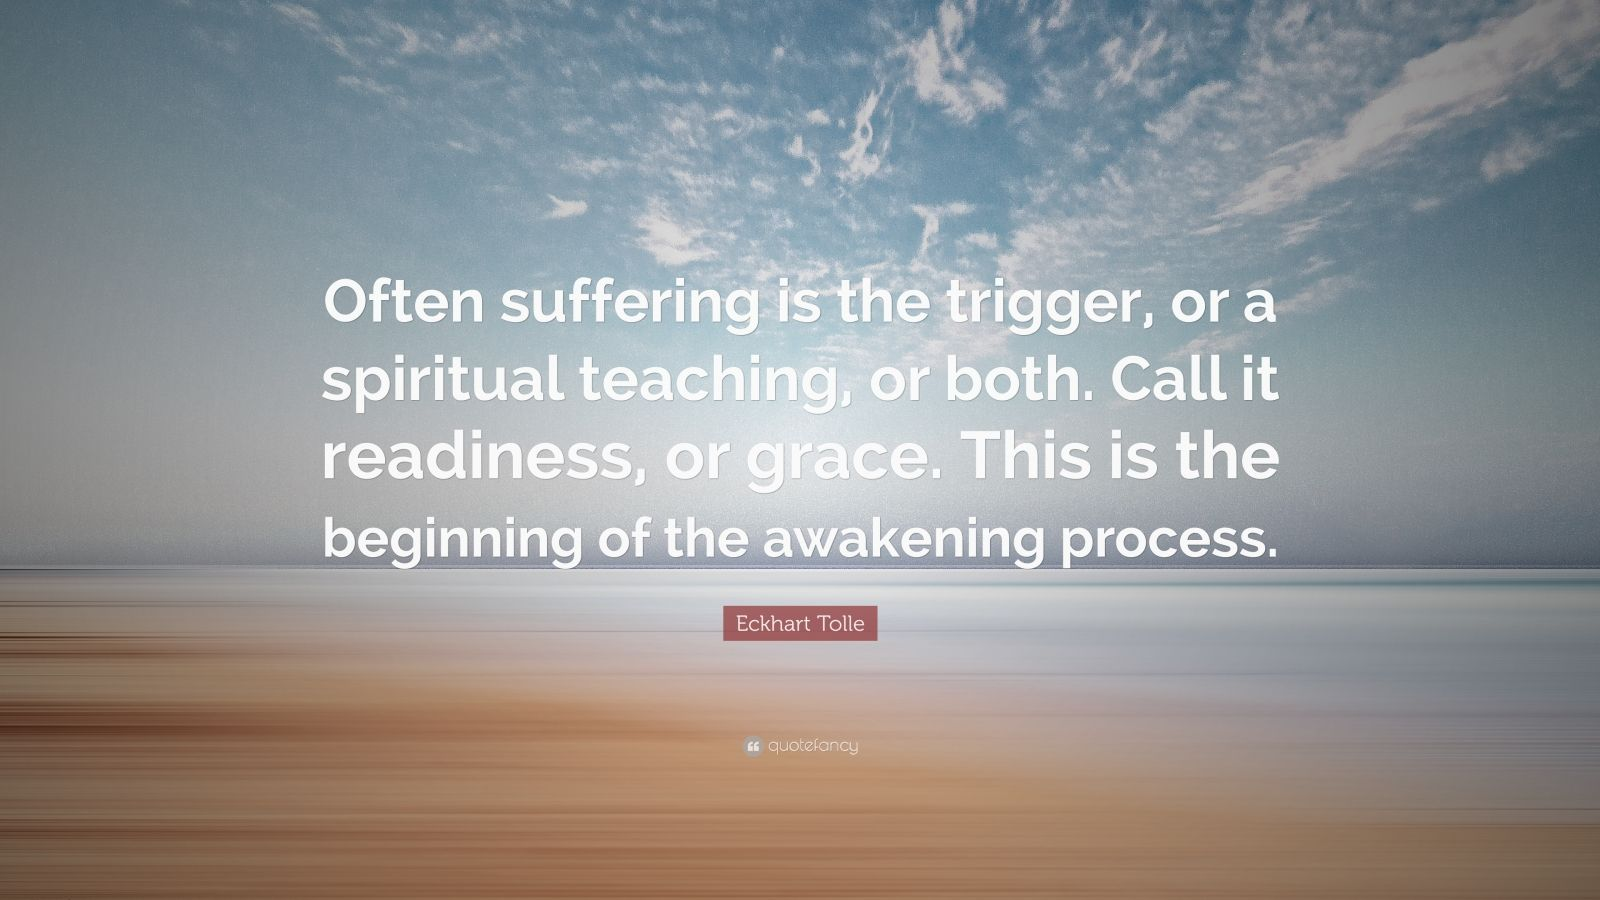 """Eckhart Tolle Quote: """"Often suffering is the trigger, or a spiritual teaching, or both. Call it readiness, or grace. This is the beginning of the awakening process."""""""